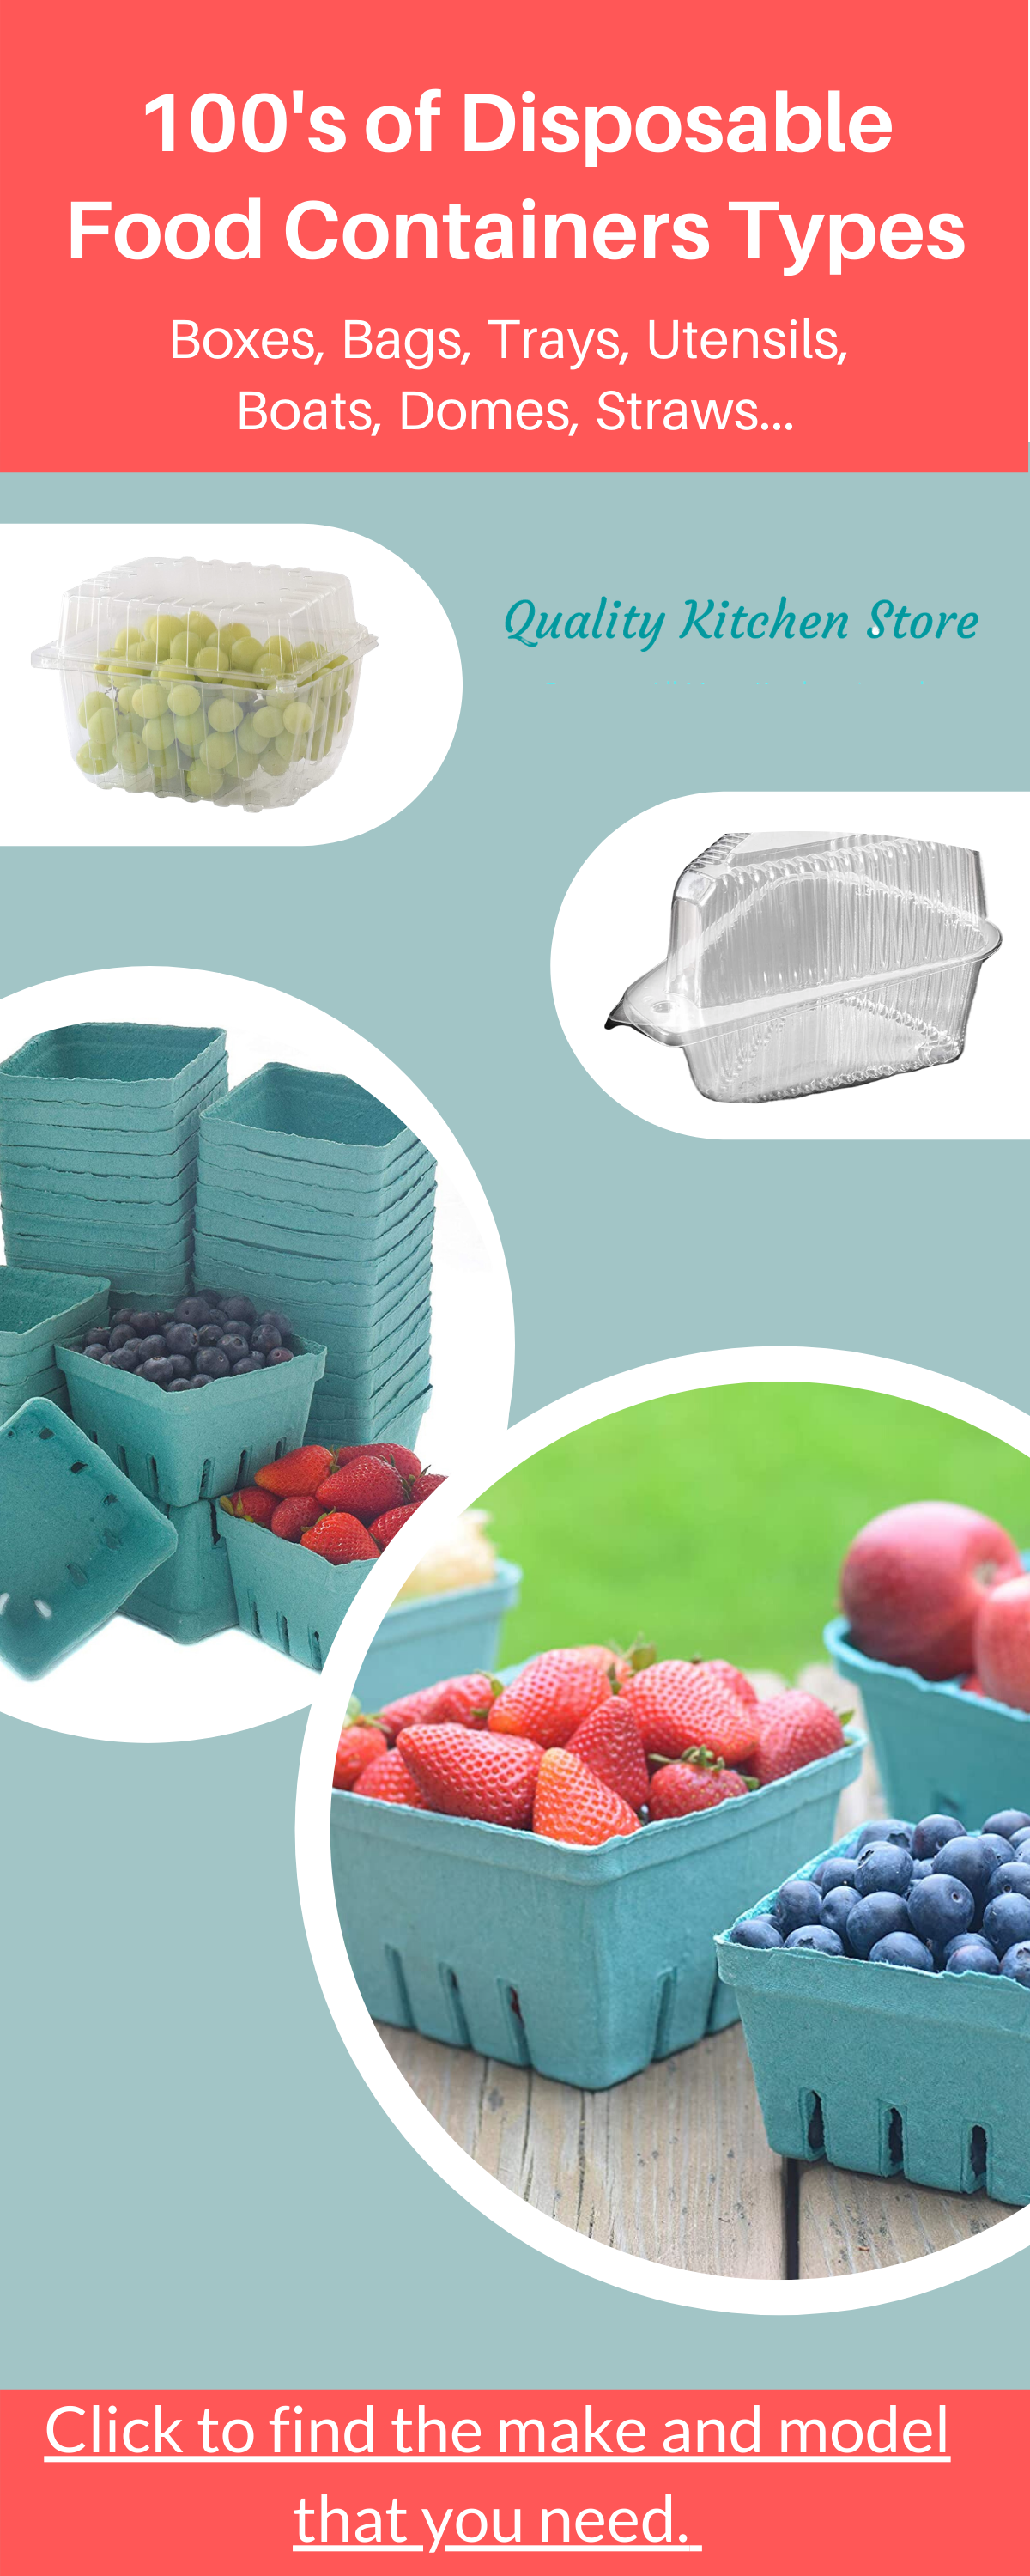 Disposable Food Packaging In 2020 Disposable Food Containers Food Containers Dry Food Storage